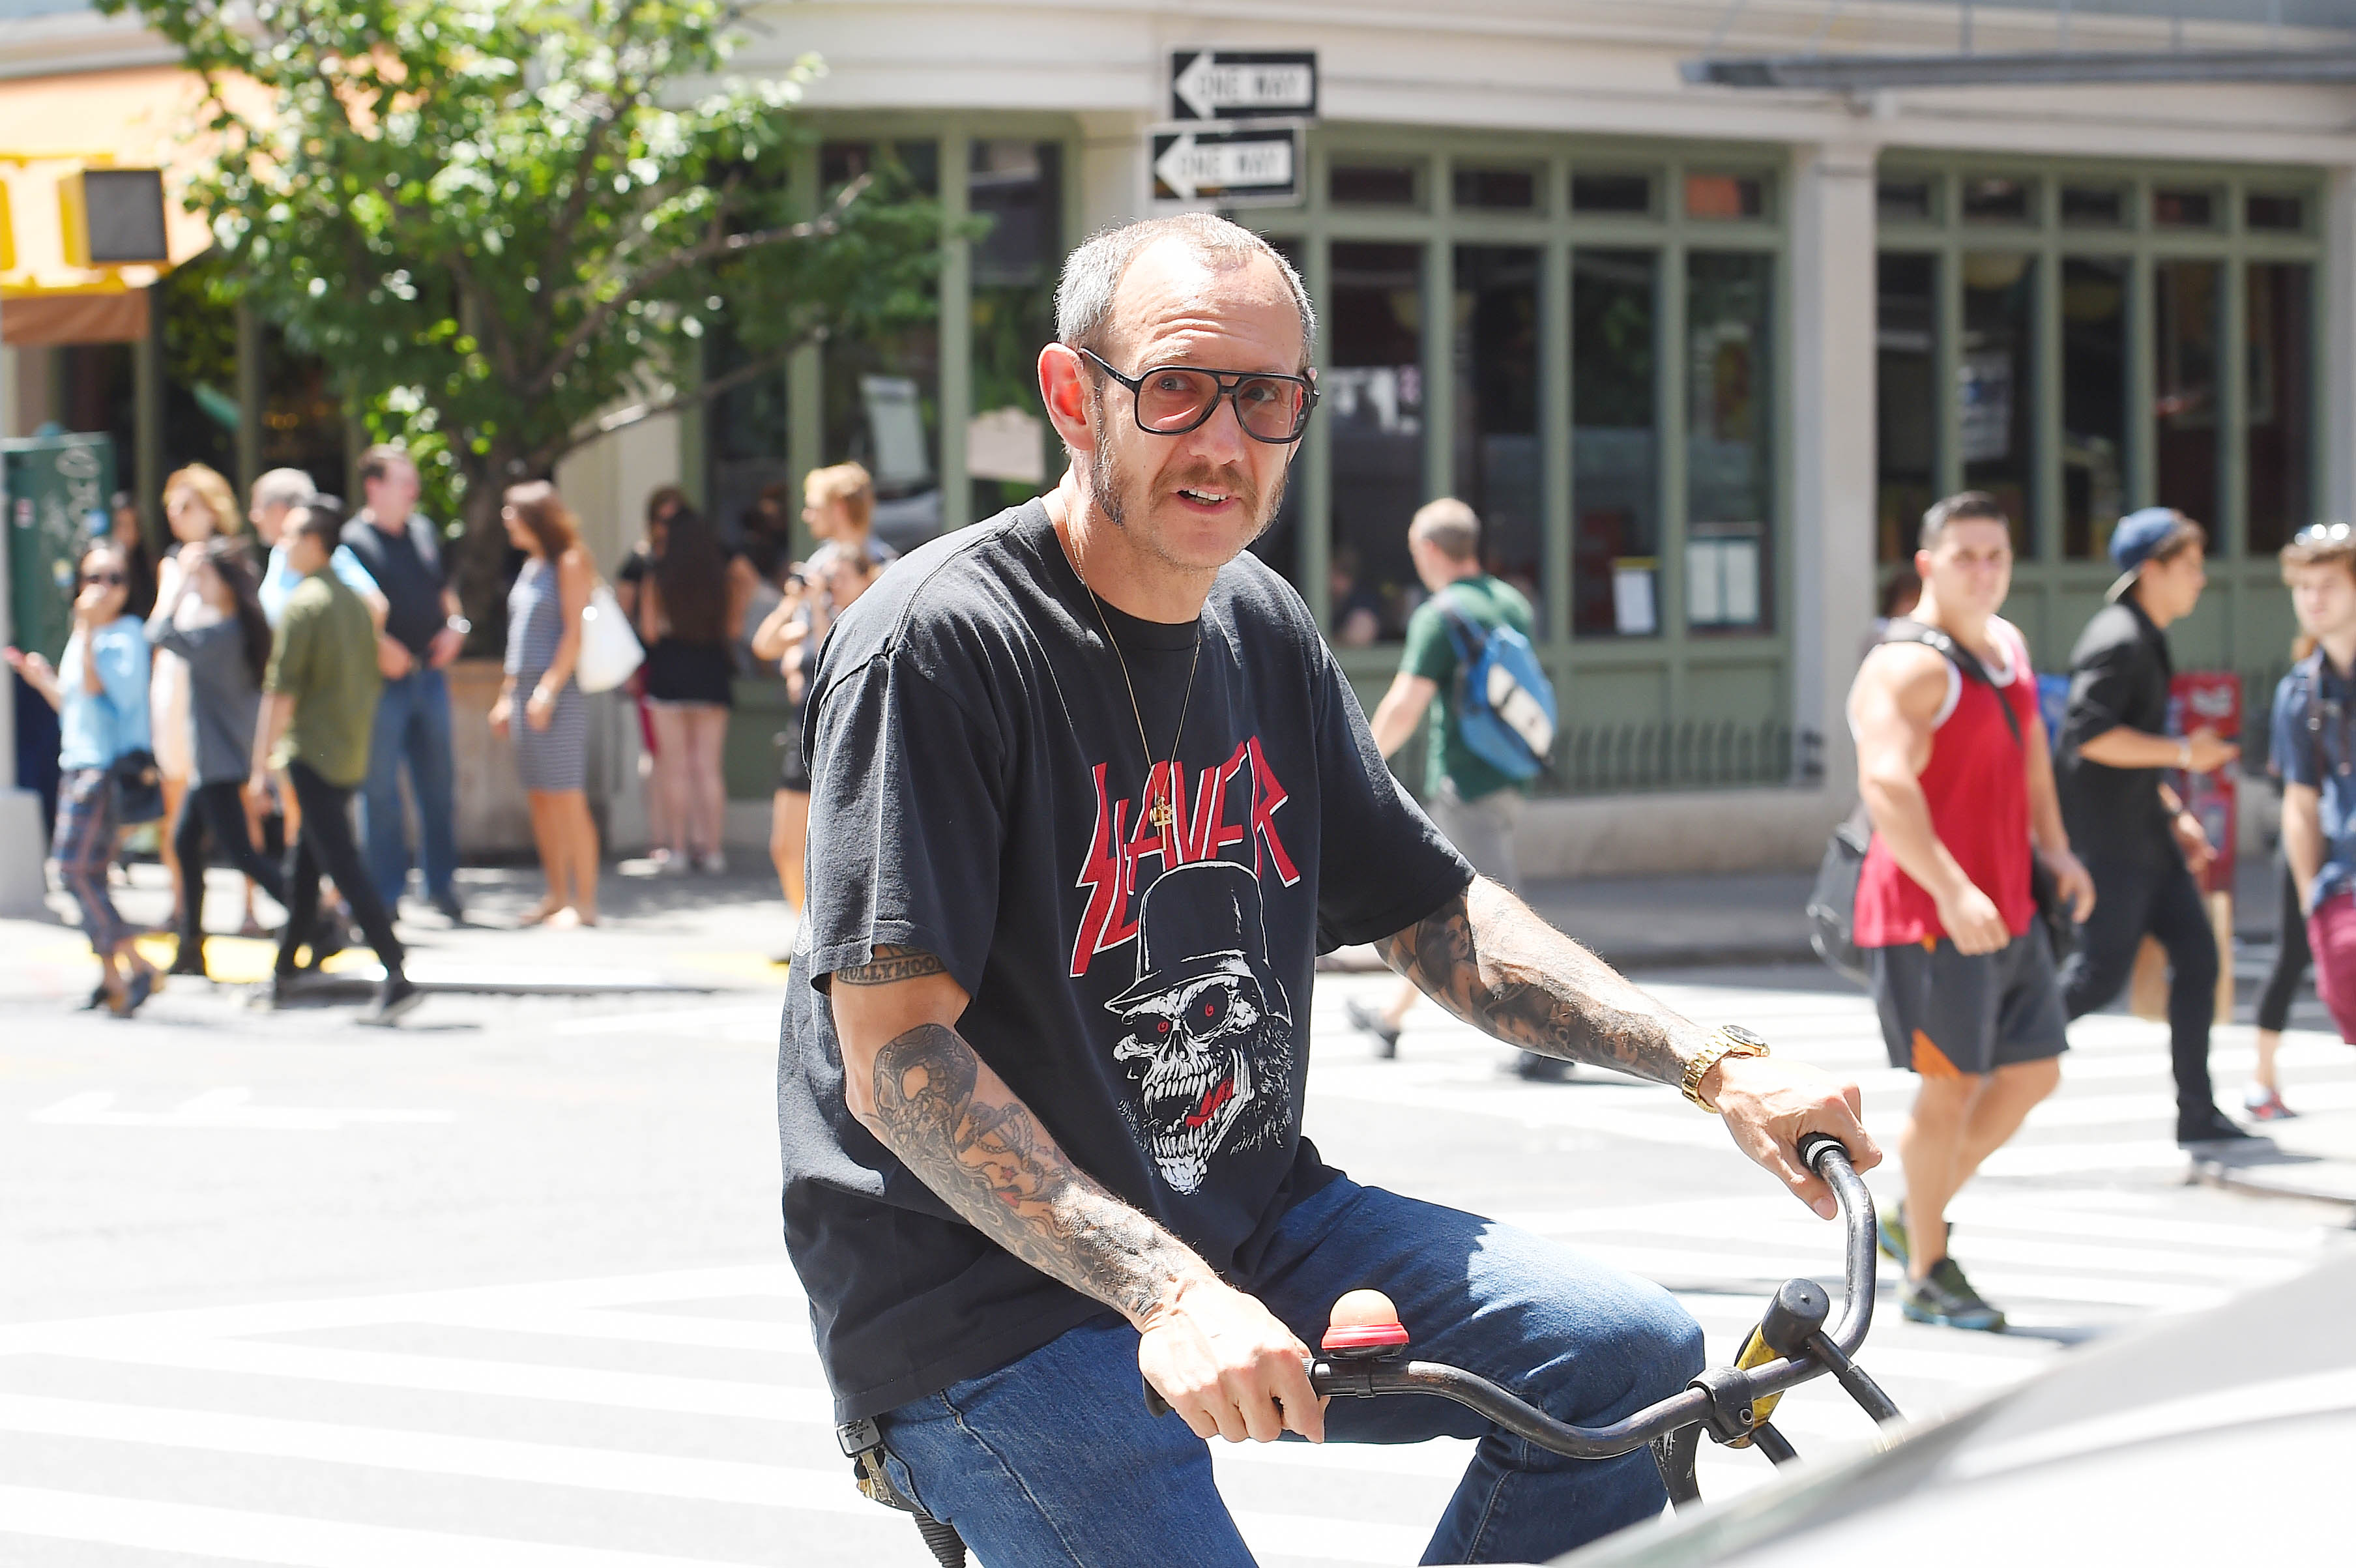 NEW YORK - JULY 24: Terry Richardson seen out in Soho with his bike on July 24, 2015 in New York, New York.  (Photo by Josiah Kamau/BuzzFoto via Getty Images)